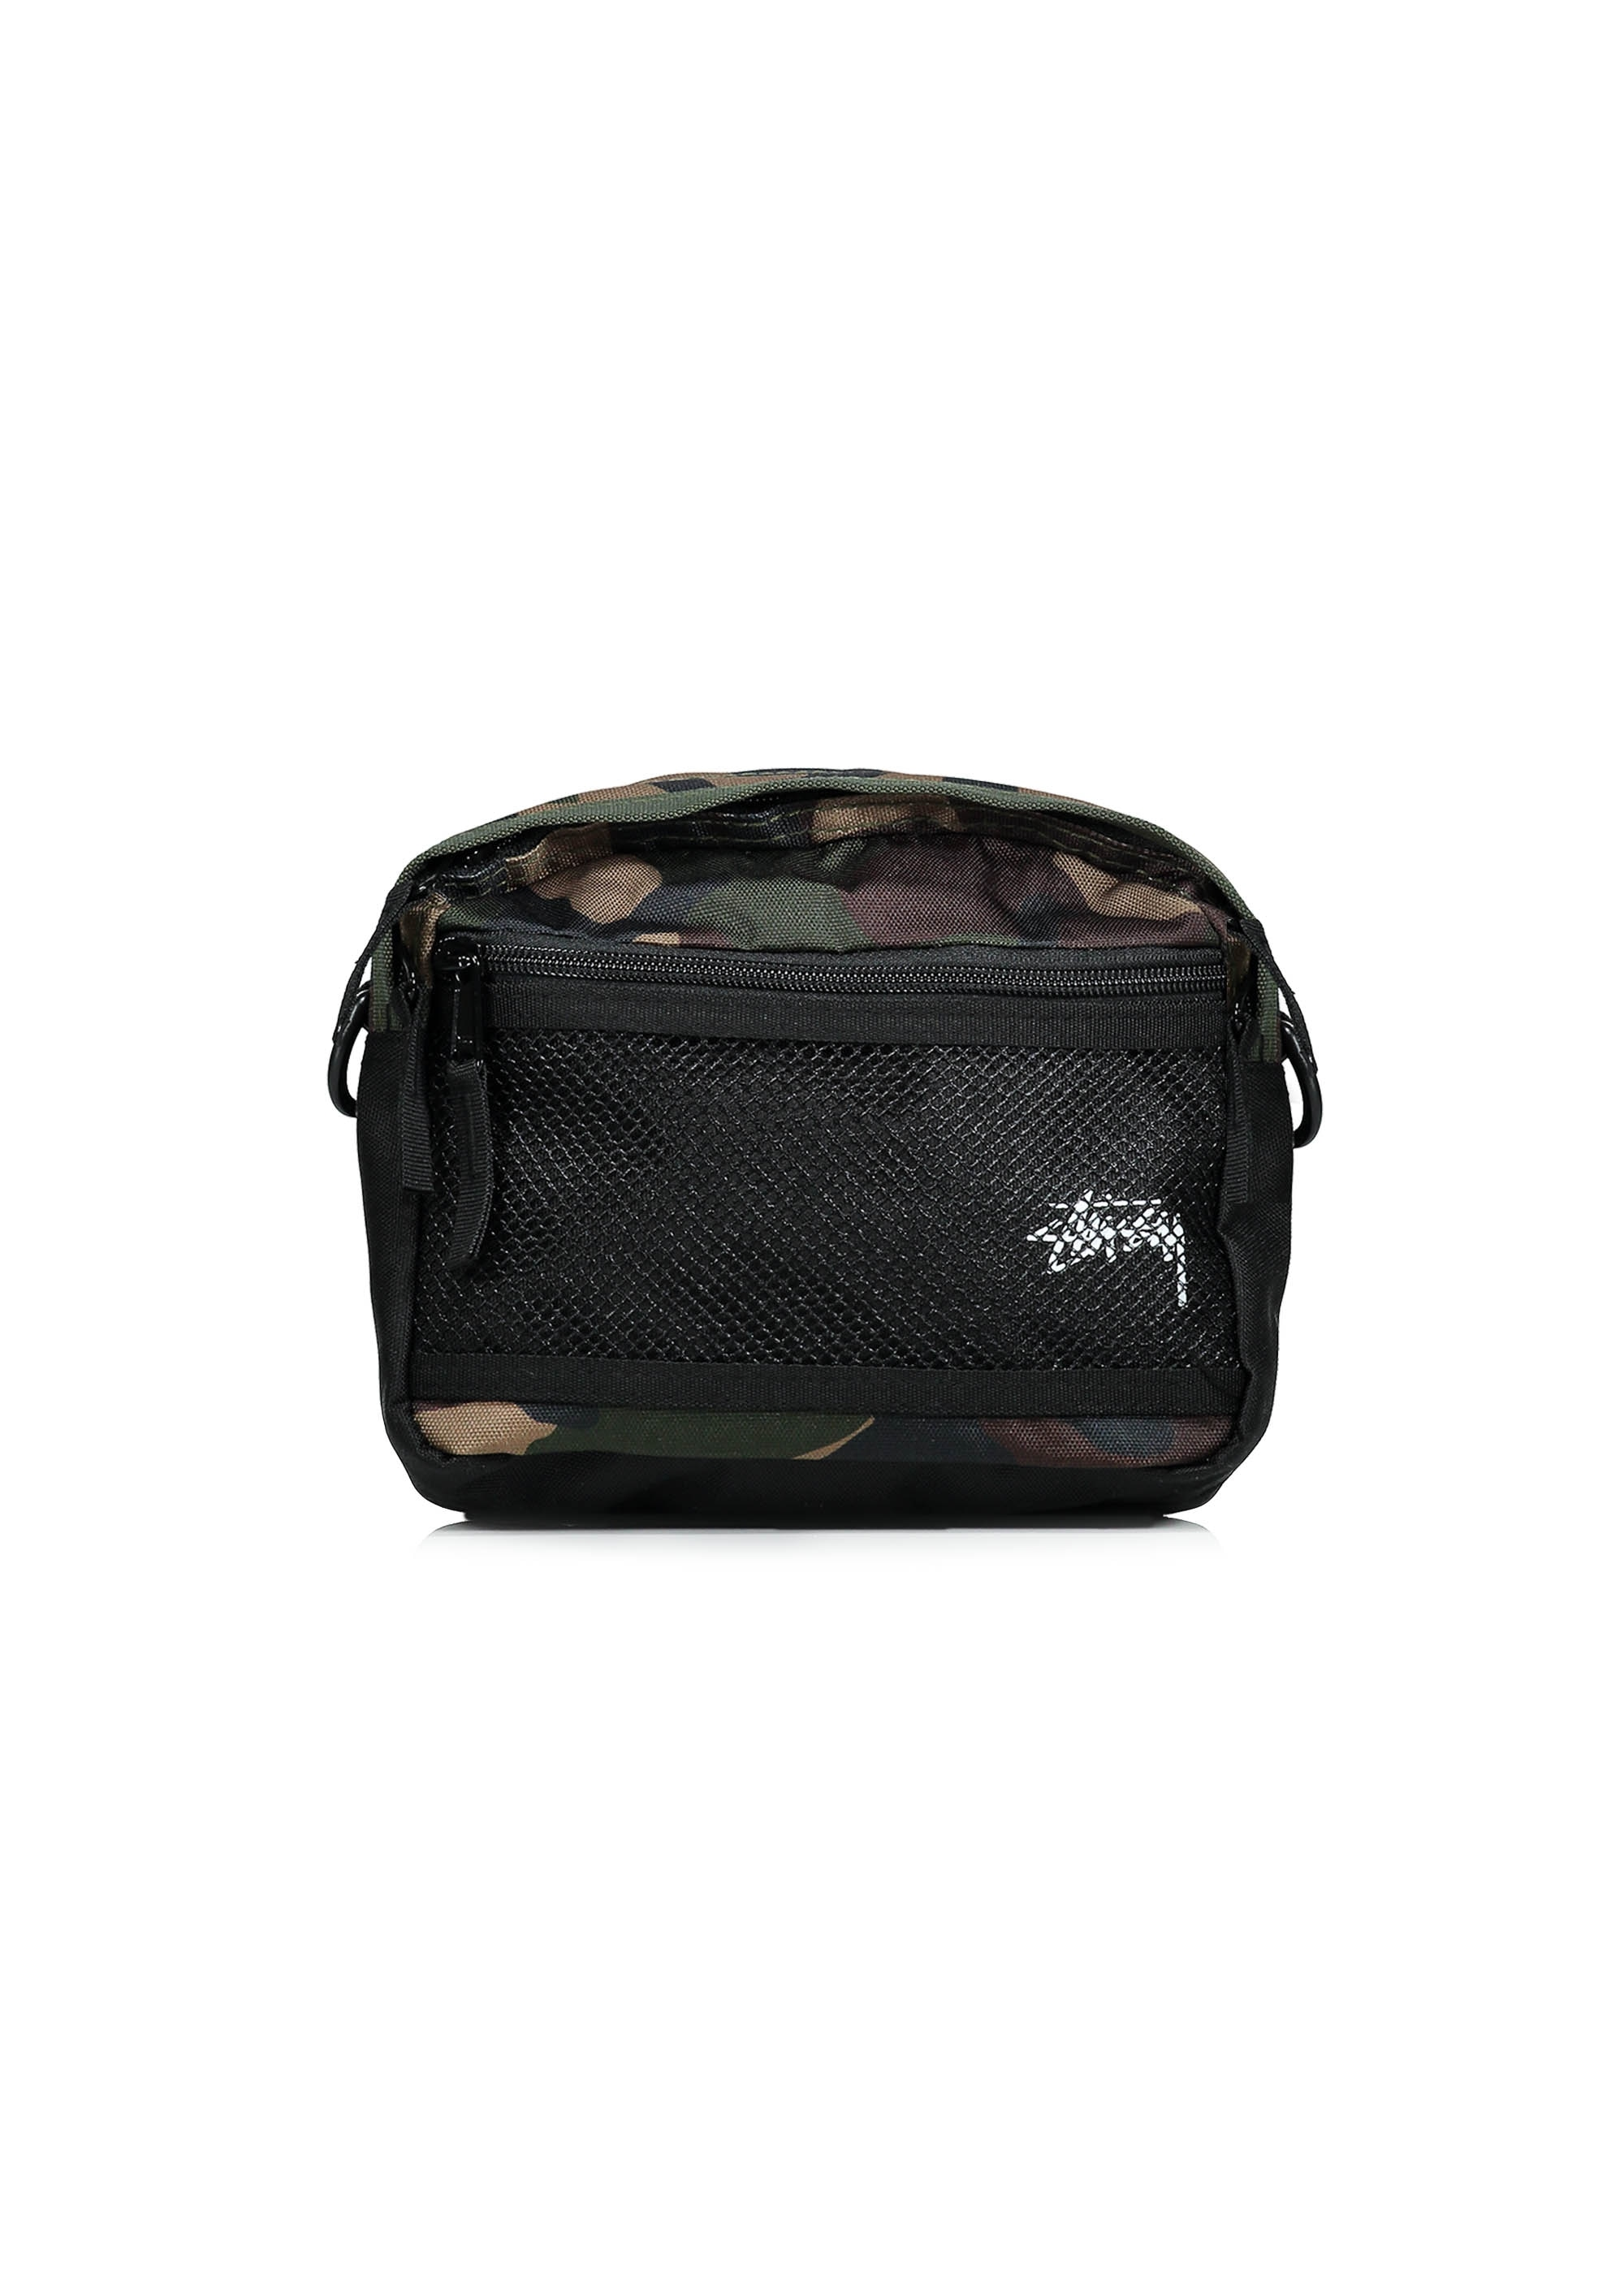 b87f677035 Stussy Stock Pouch - Woodland Camo - Bags from Triads UK